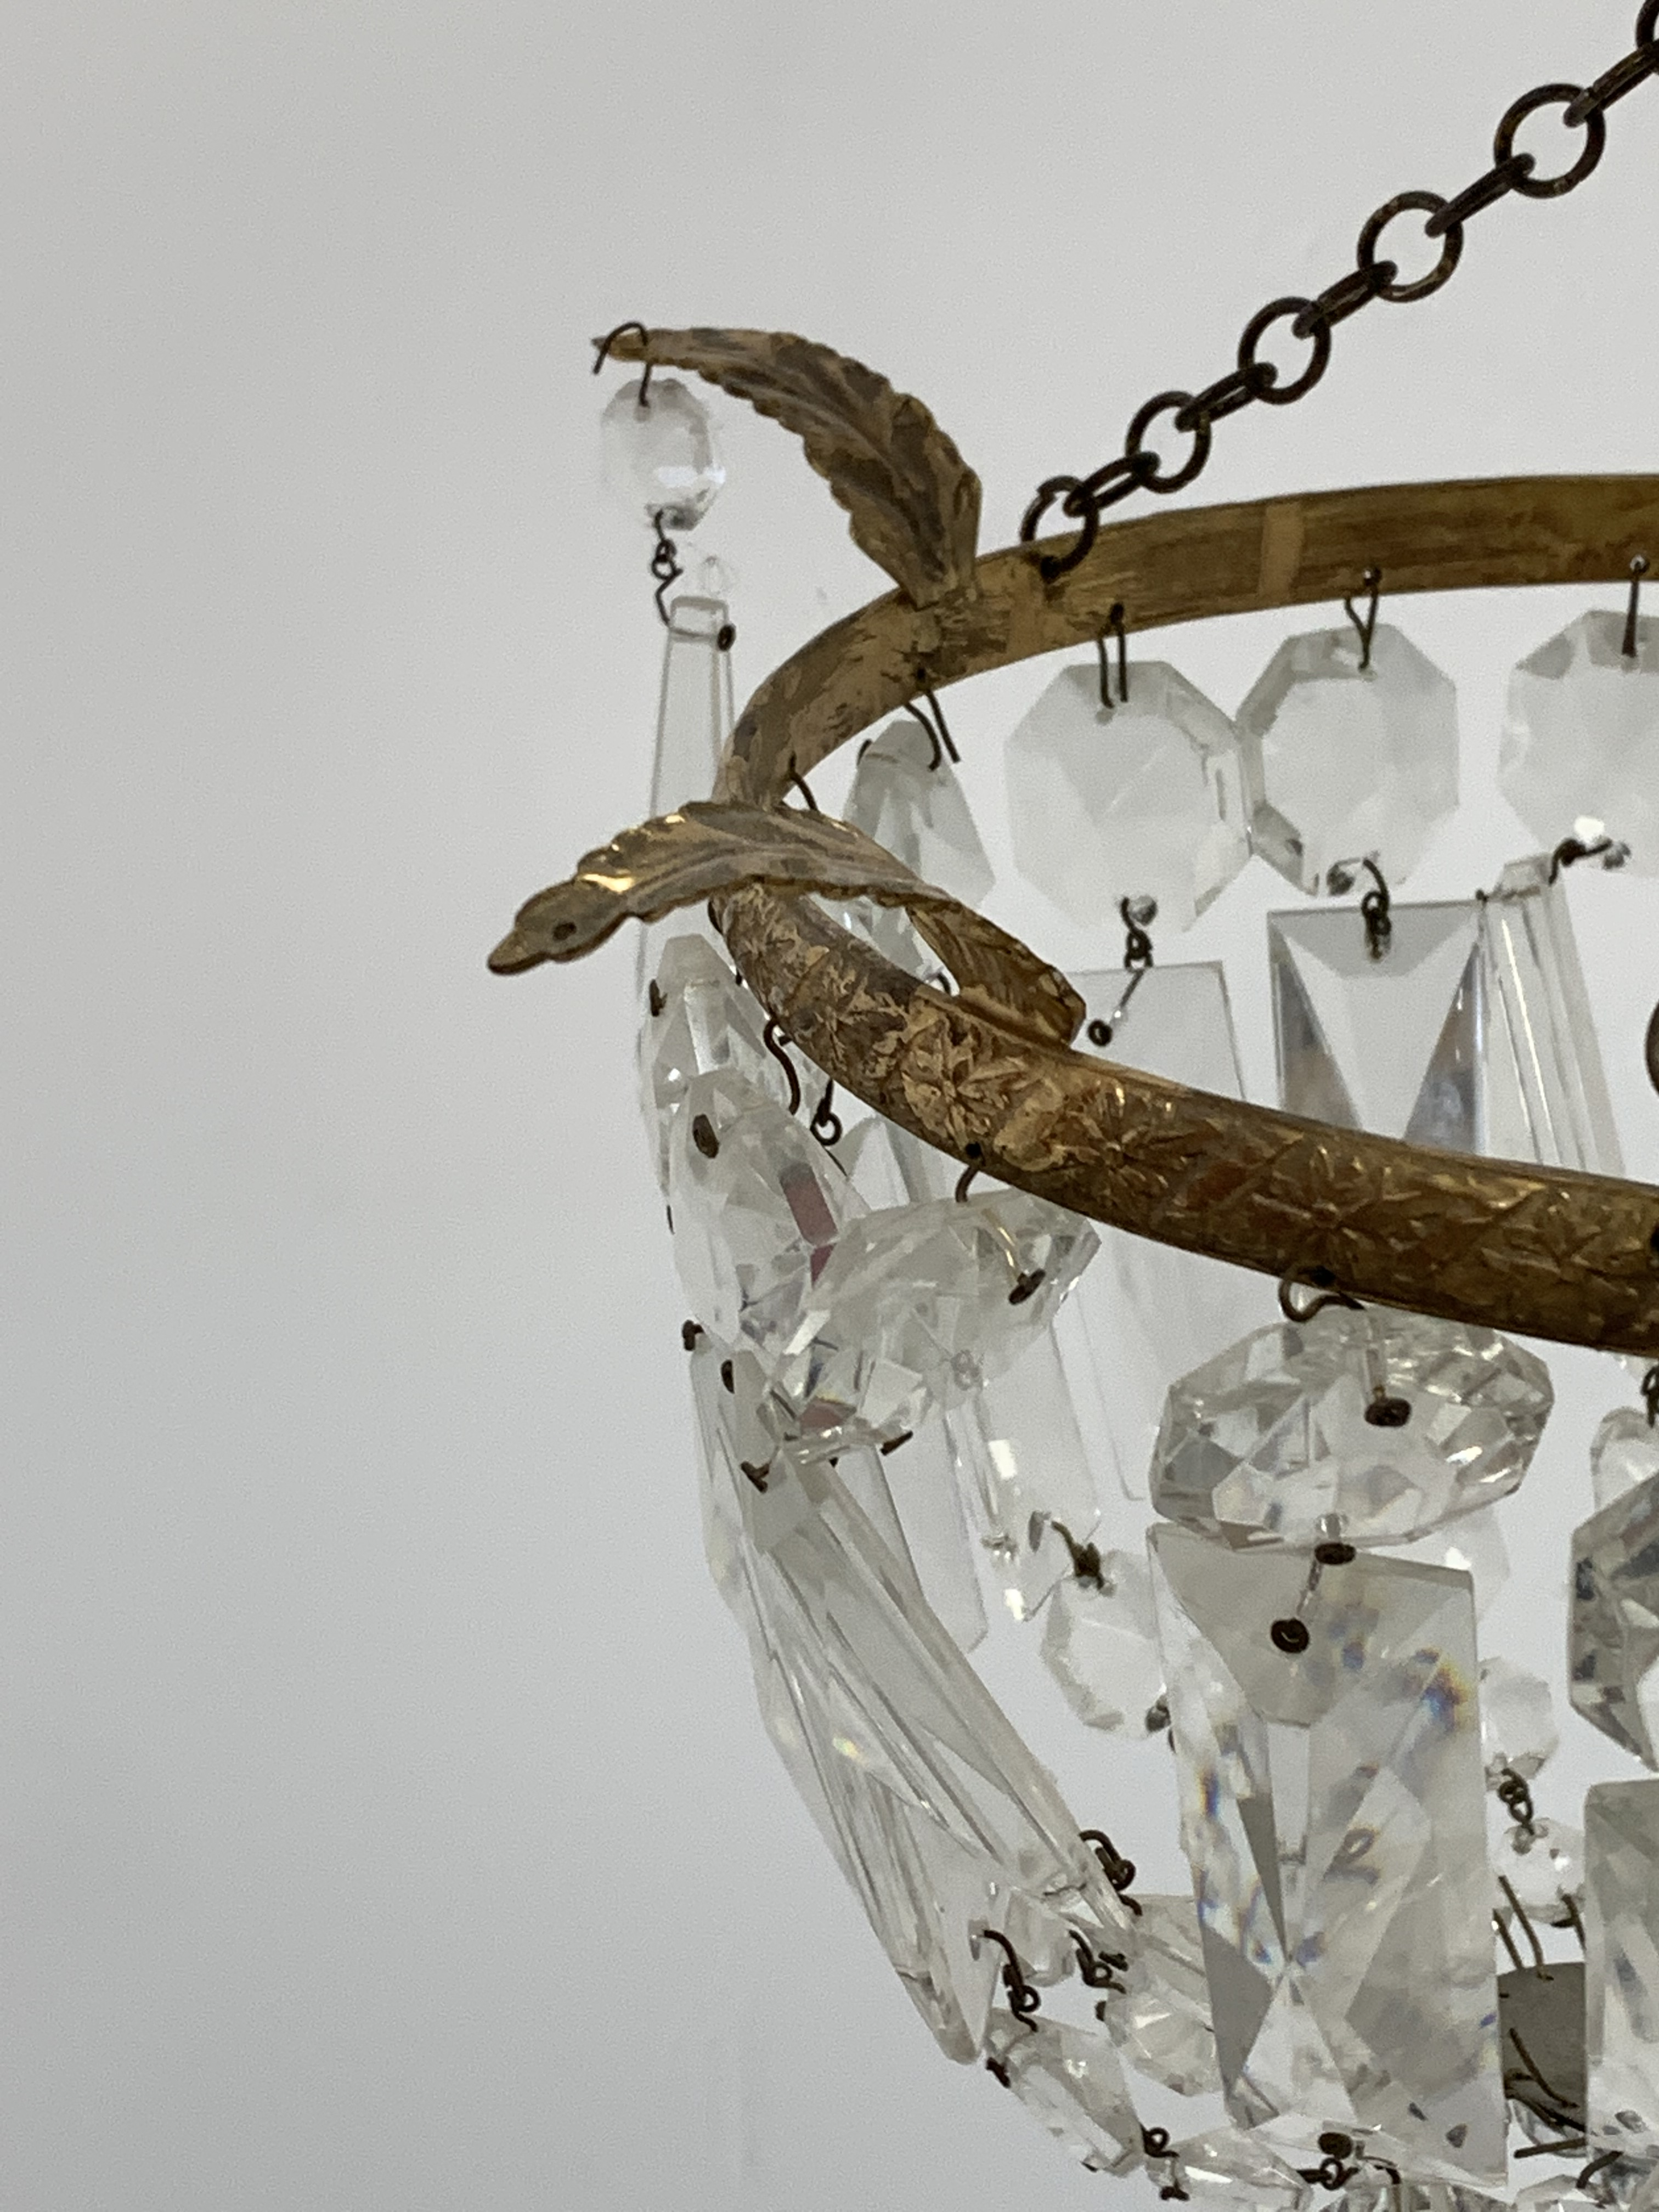 Gilt metal circlet light fitting hung with lustre drops, four various wall lights, reproduction Whit - Image 5 of 5